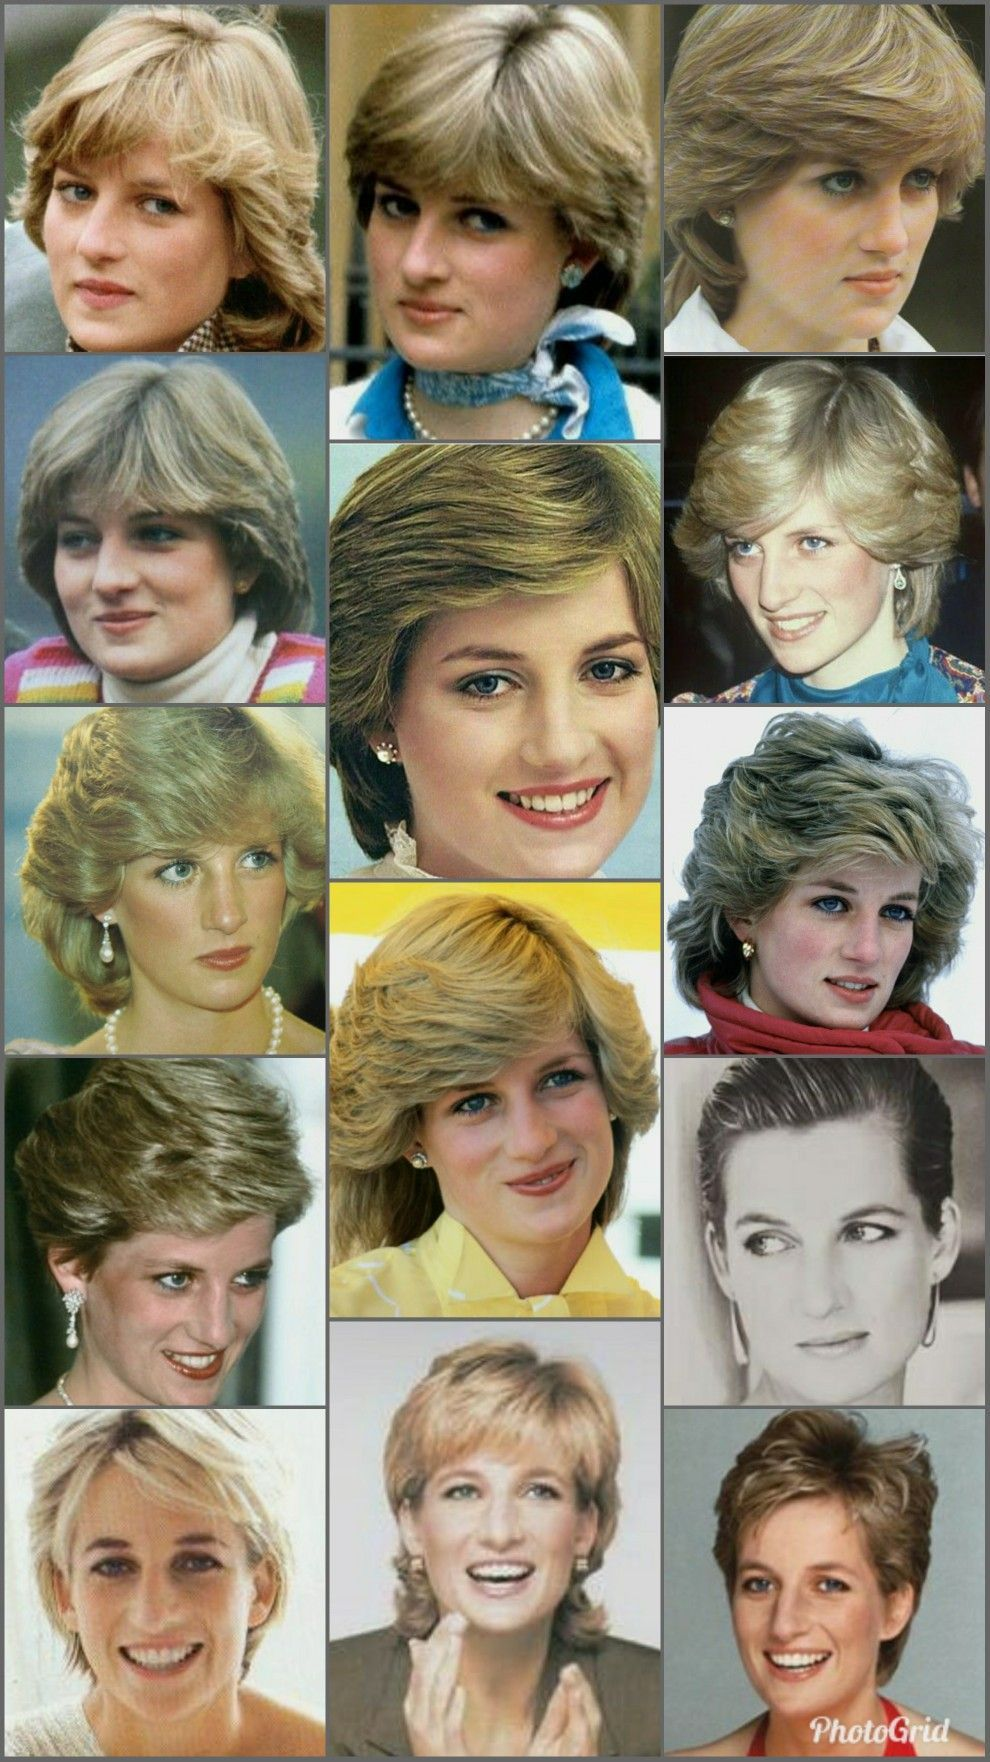 Beautiful Princess Diana S Haircut Princessdiana Beautiful Princess Diana S Haircut In 2020 Princess Diana Hair Diana Haircut Princess Diana Family